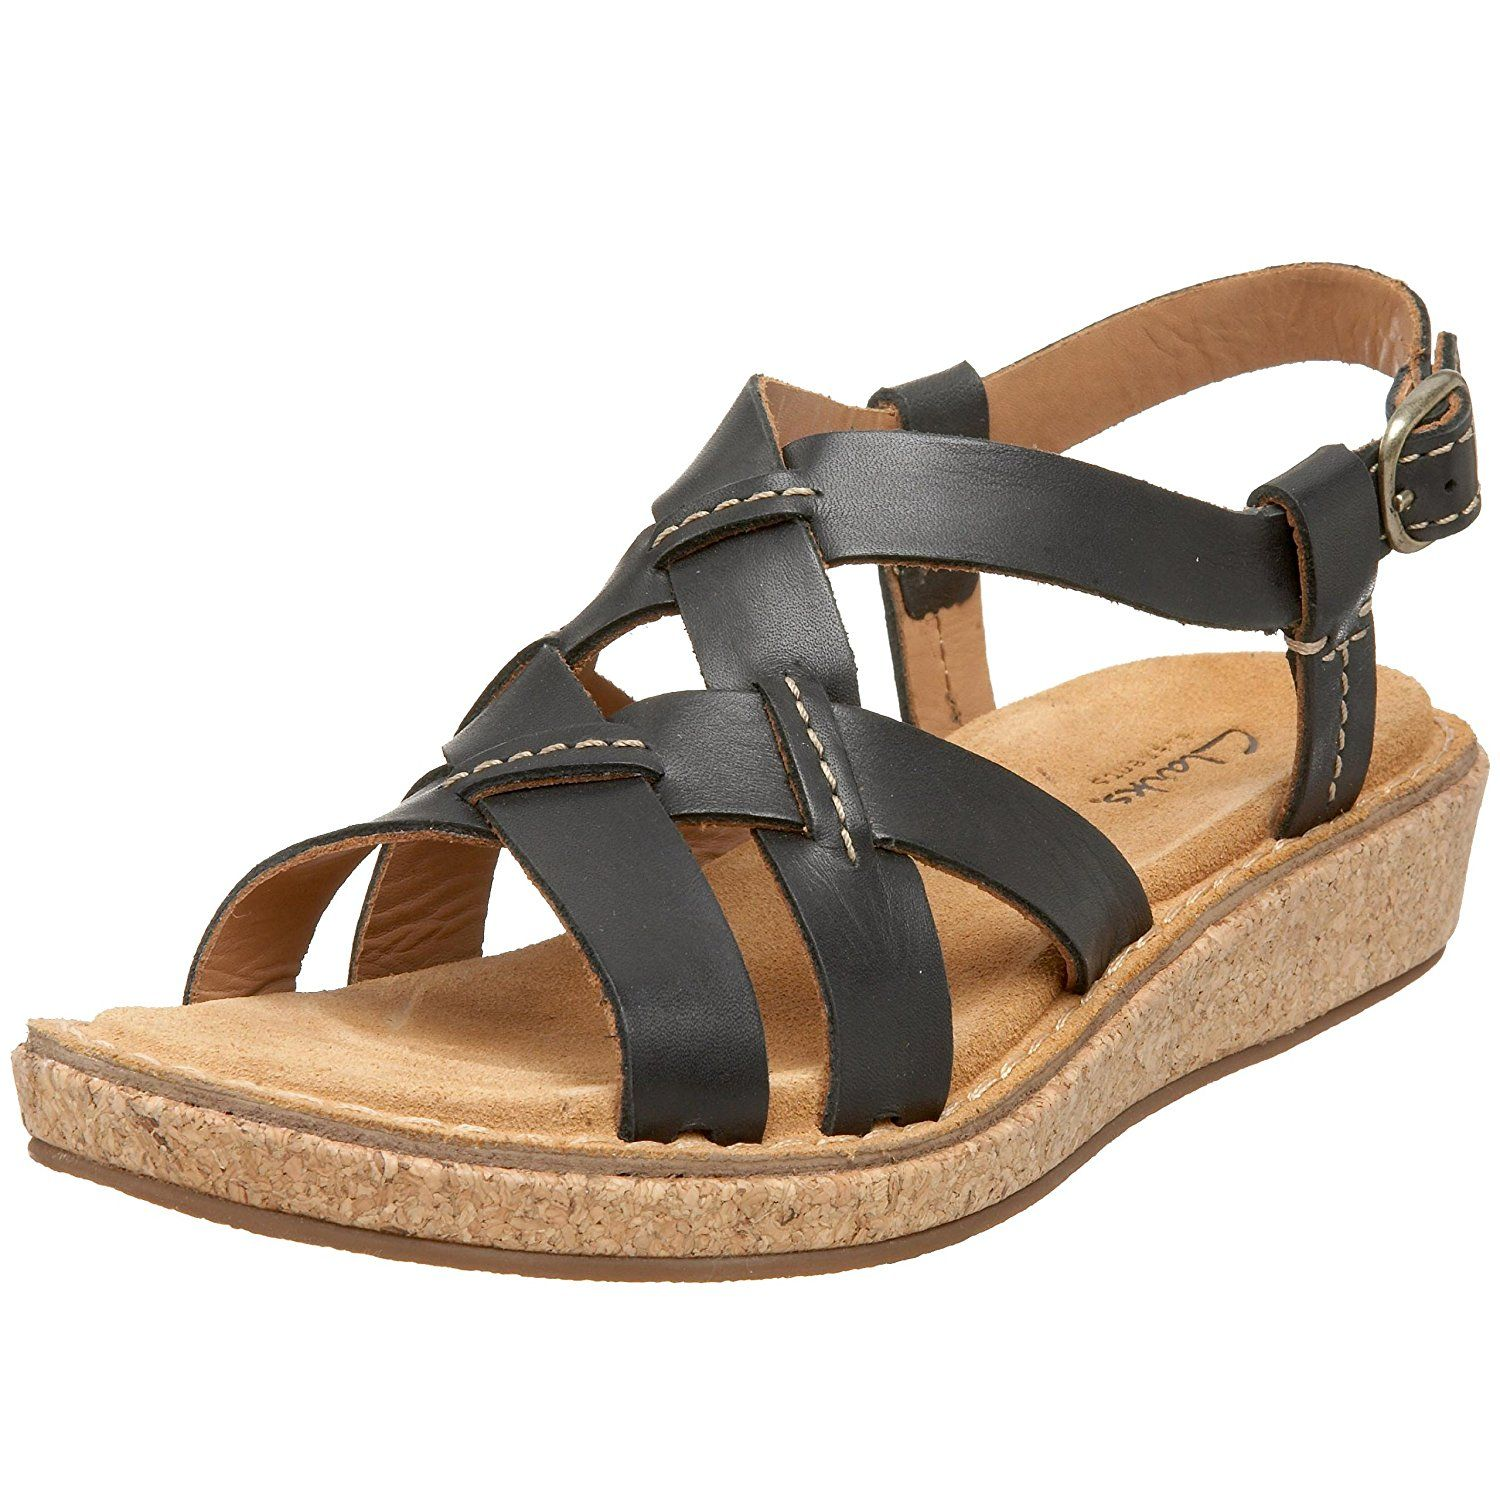 Seguro zoo fuerte  Clarks Women's Eastham Woven Sandal *** Insider's special review ...